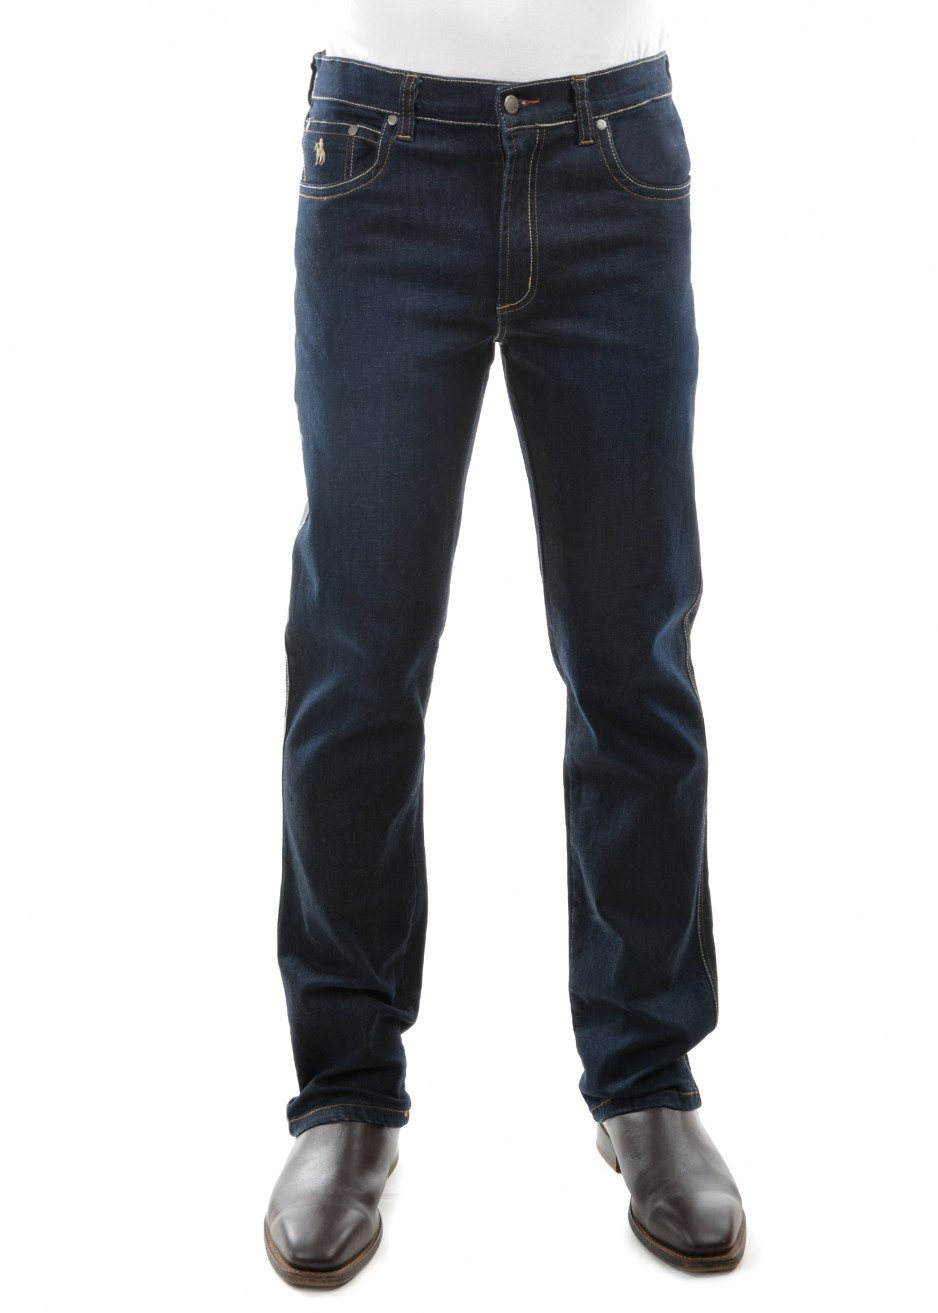 MENS BASS STRETCH COMFORT WAIST JEAN MID-RELAXED-STRAIGHT 32 LEG